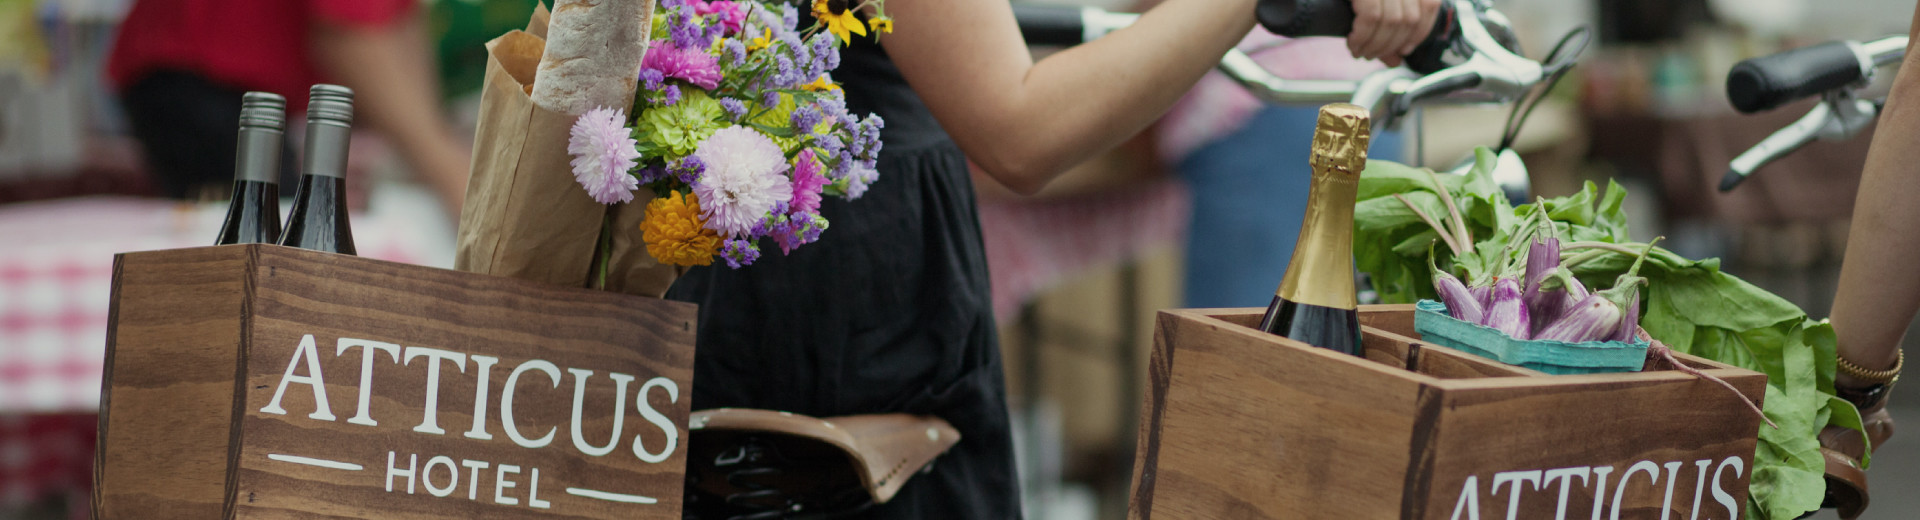 Atticus Hotel guests shop Historic Downtown McMinnville for fresh food, flowers and local wines.